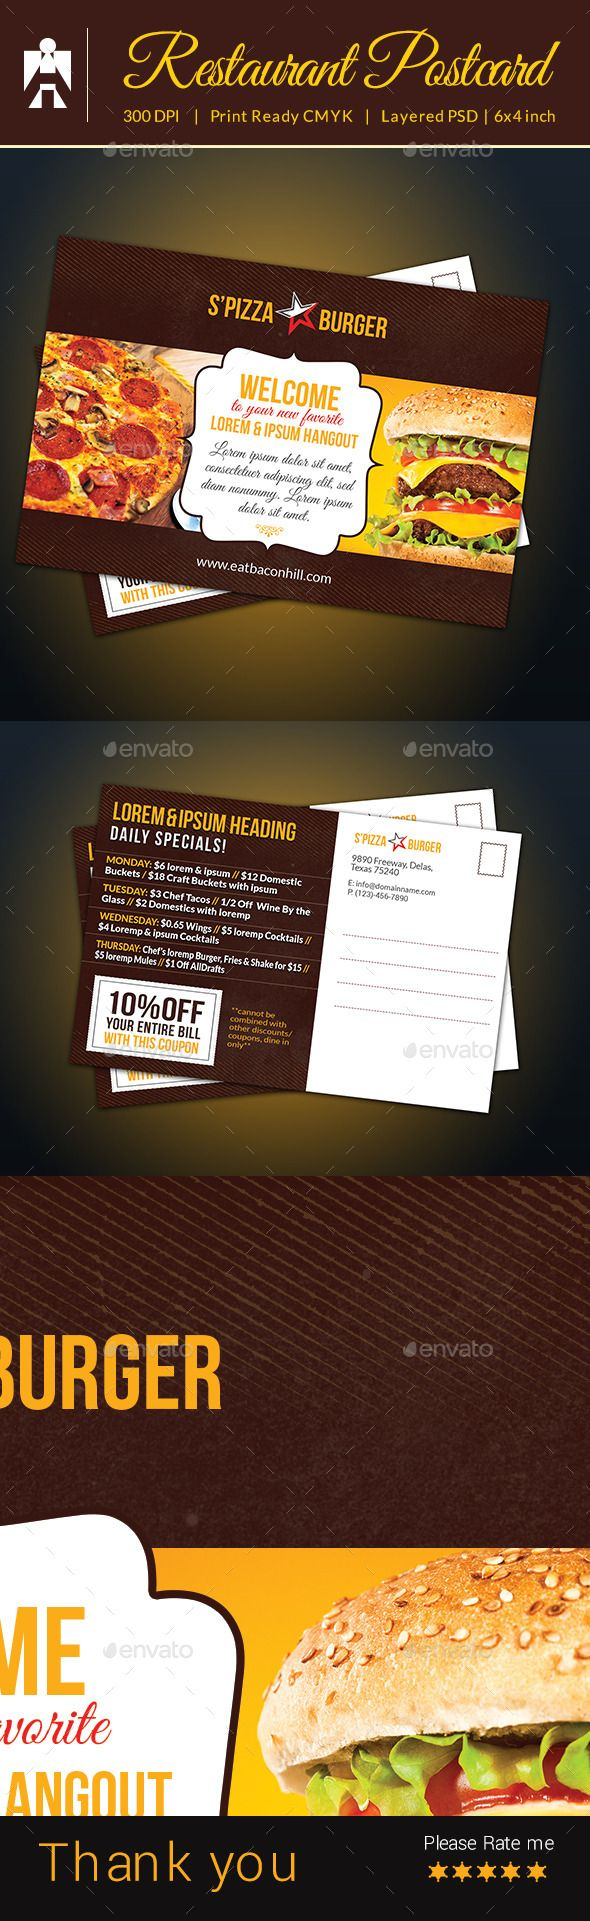 27 best printed material images on pinterest postcard design restaurant postcard with coupon code fandeluxe Gallery